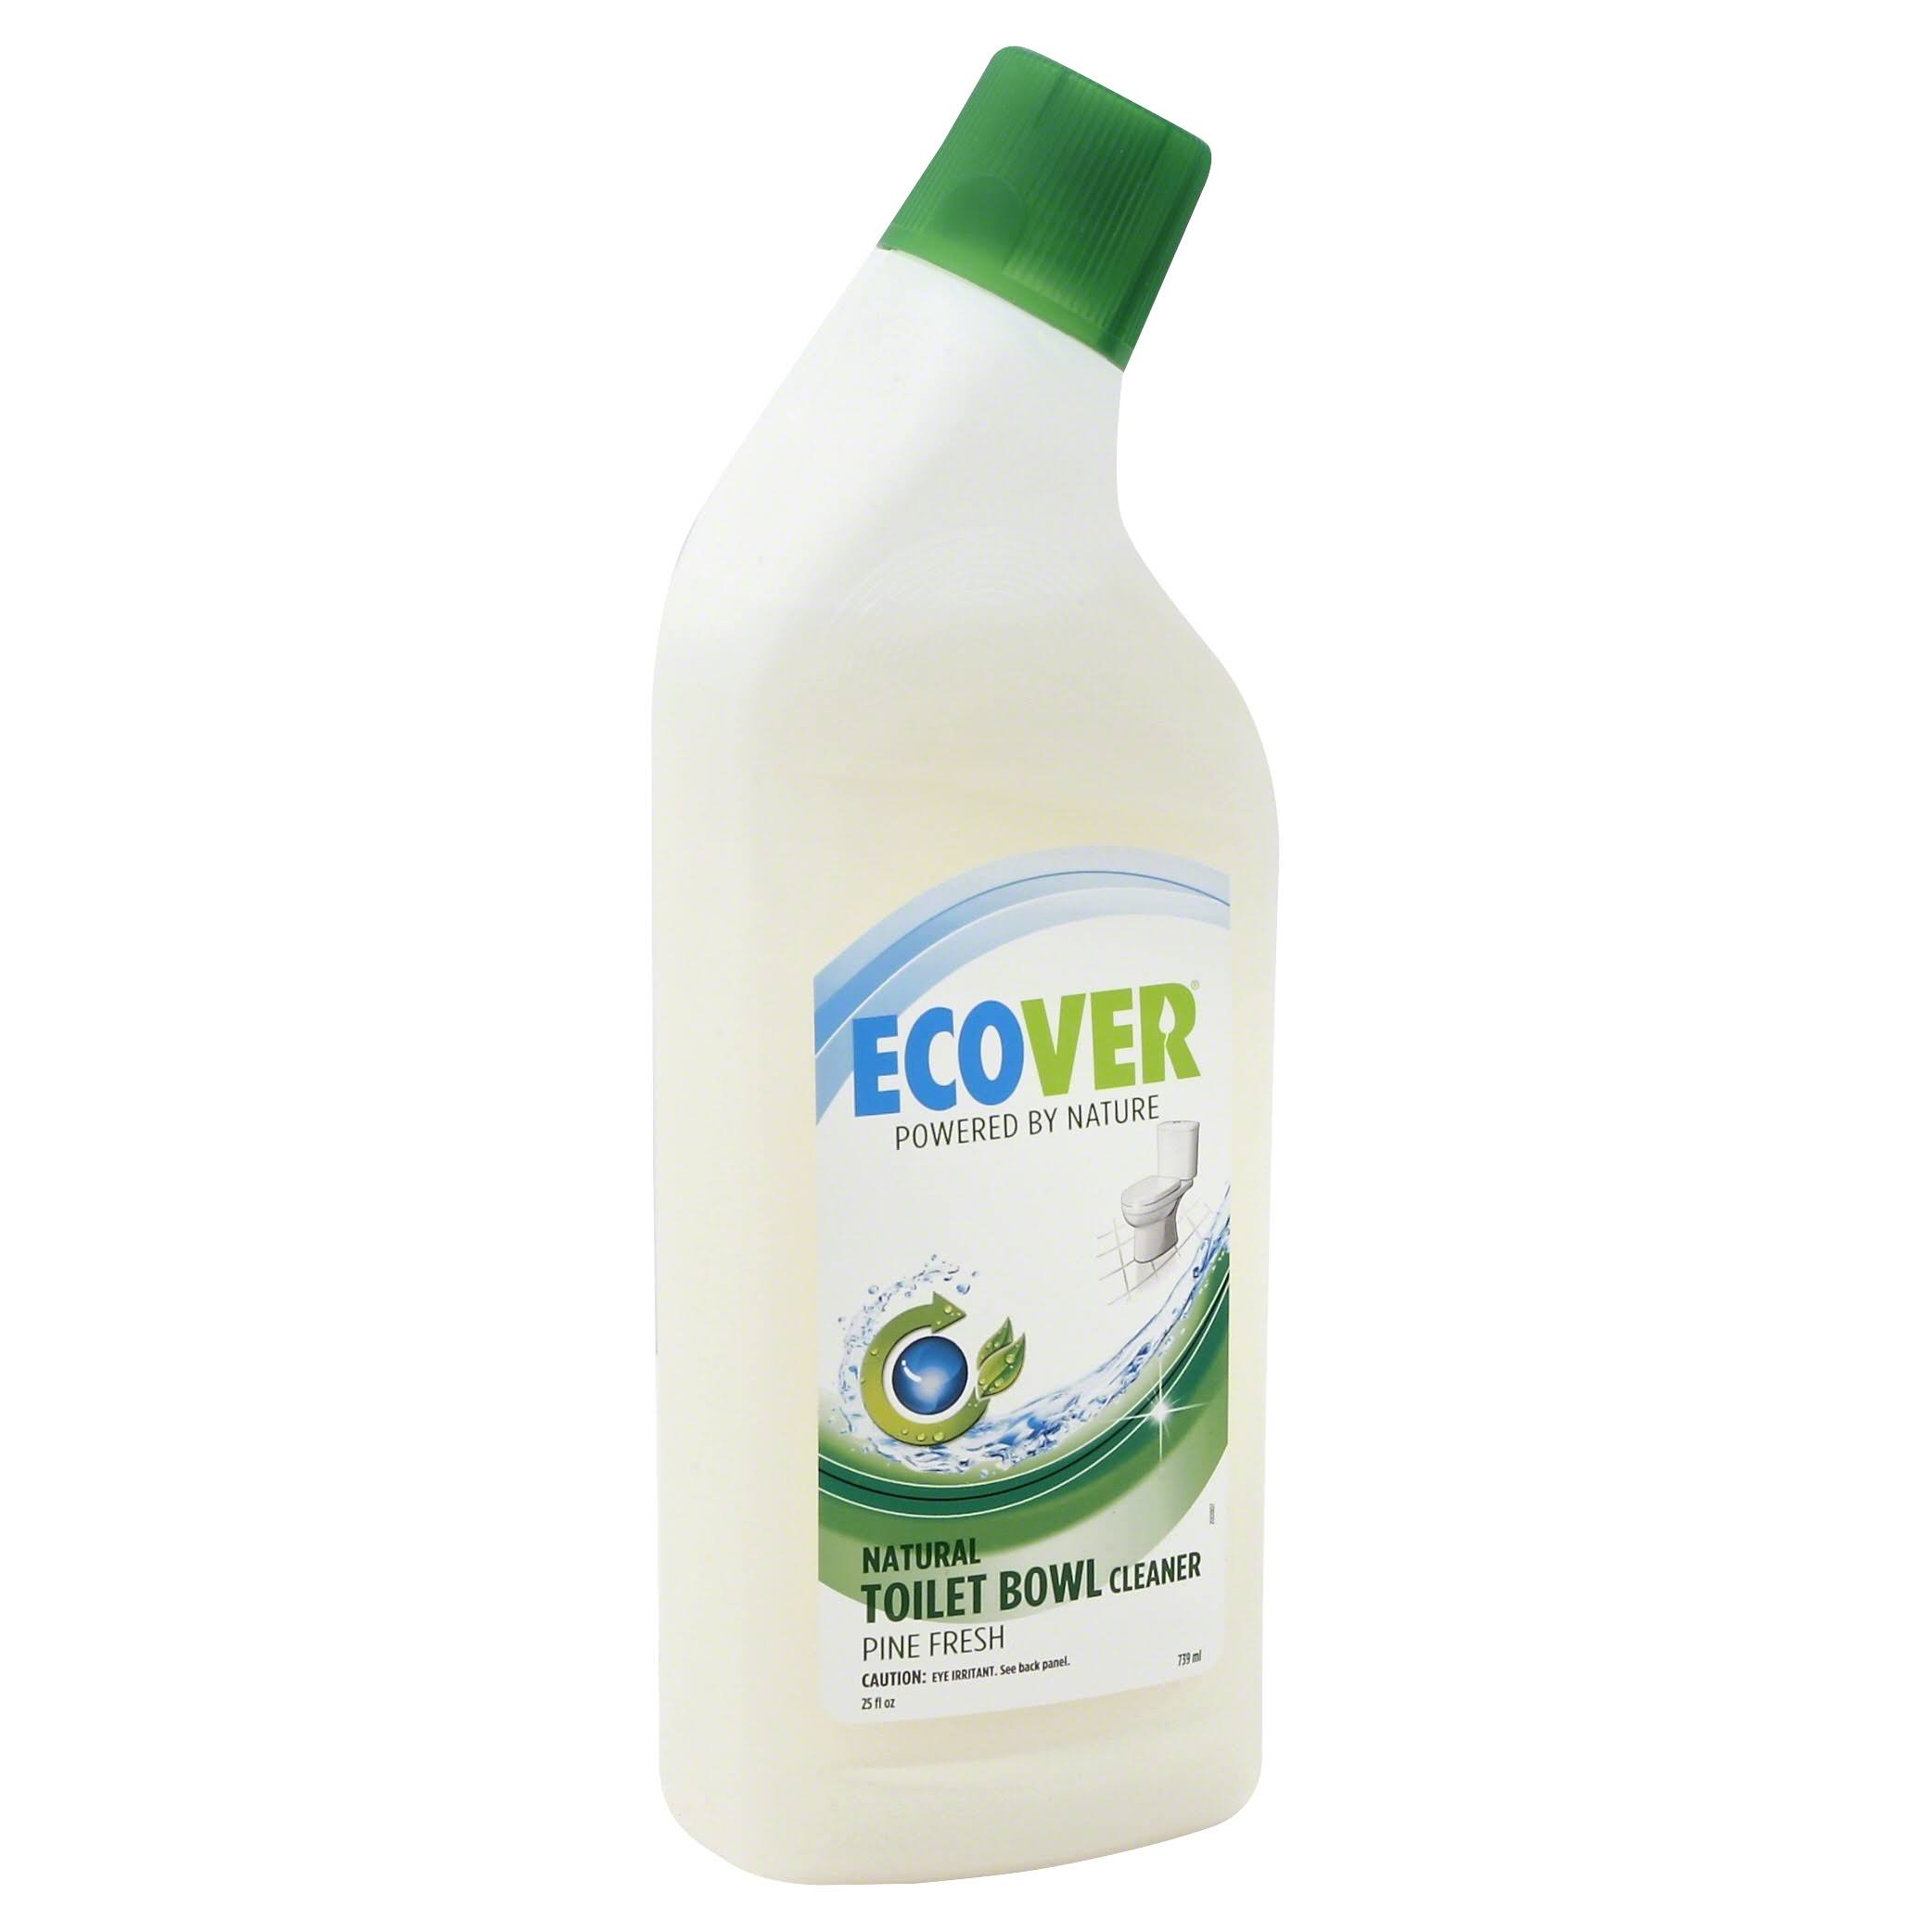 Ecover Toilet Bowl Cleaner - Pine Fresh